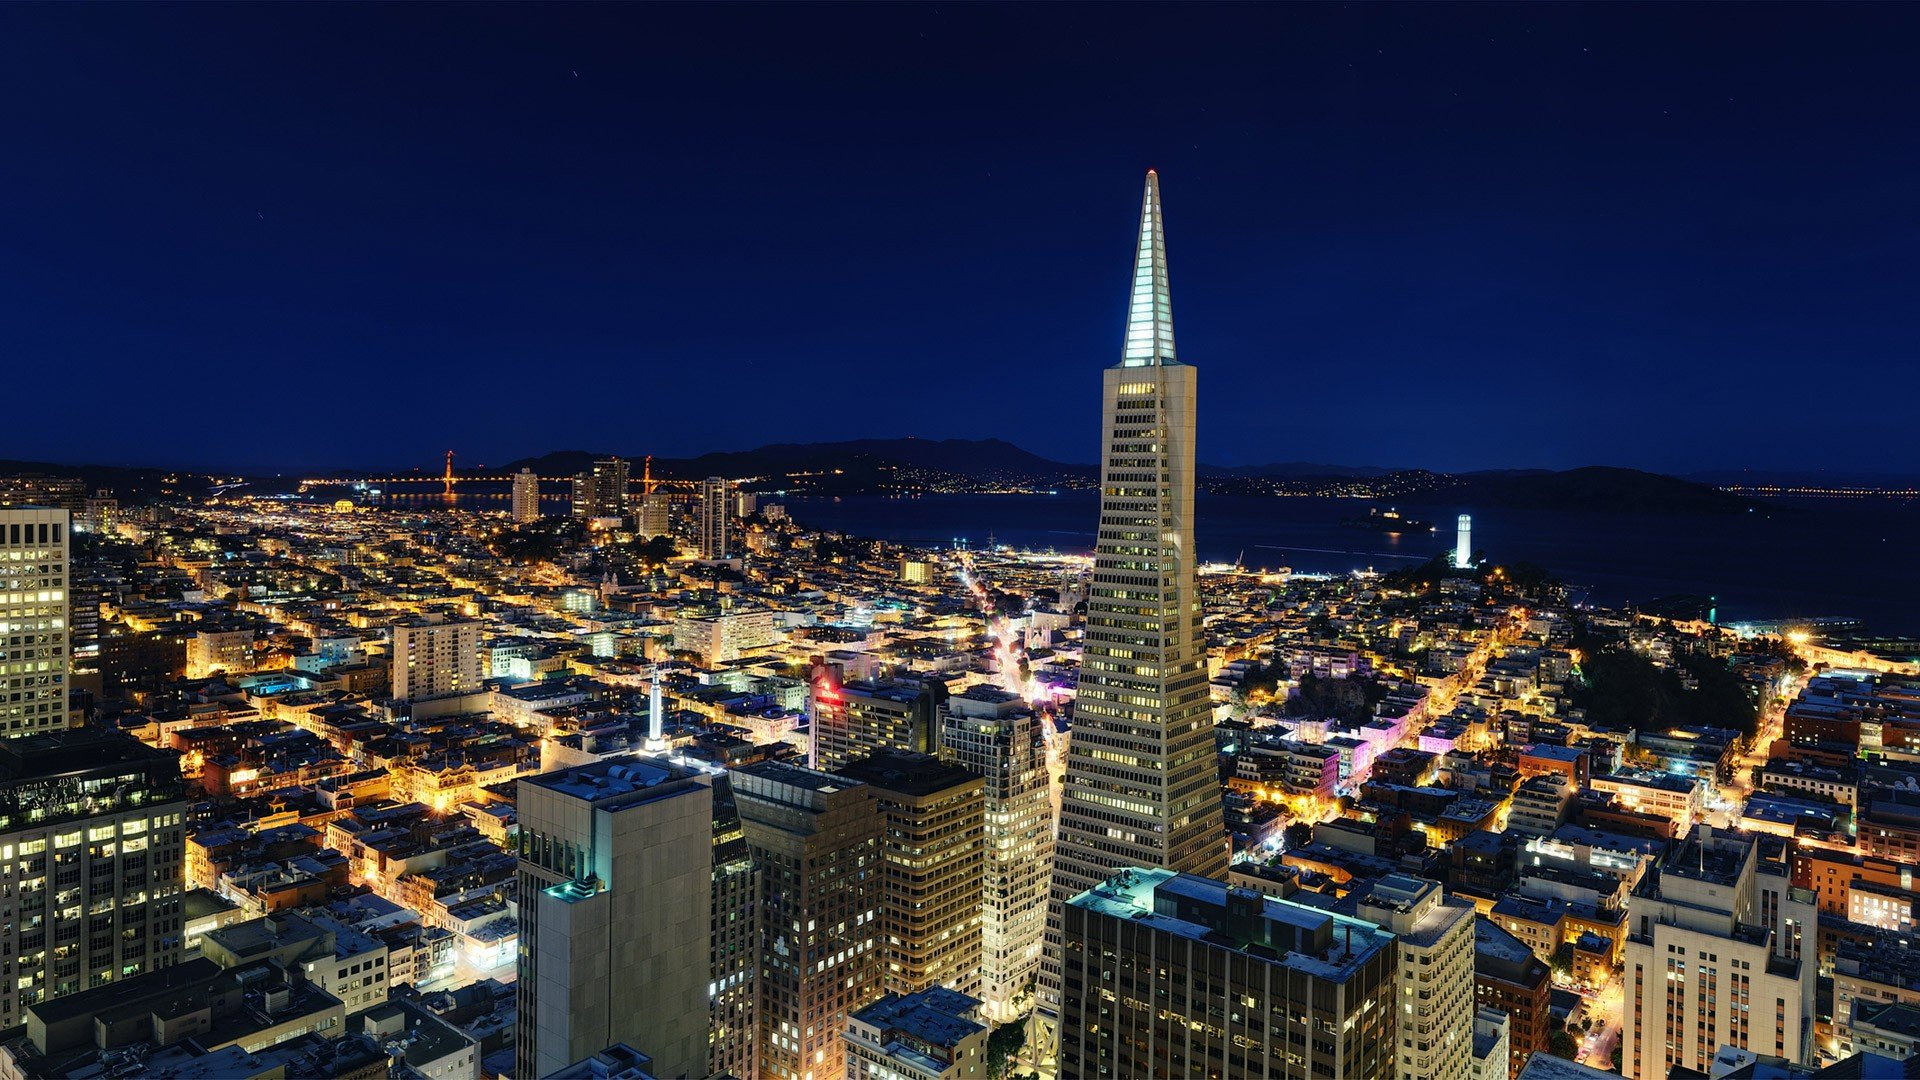 cityscapes San Francisco TransAmerica Building wallpaper background 1920x1080